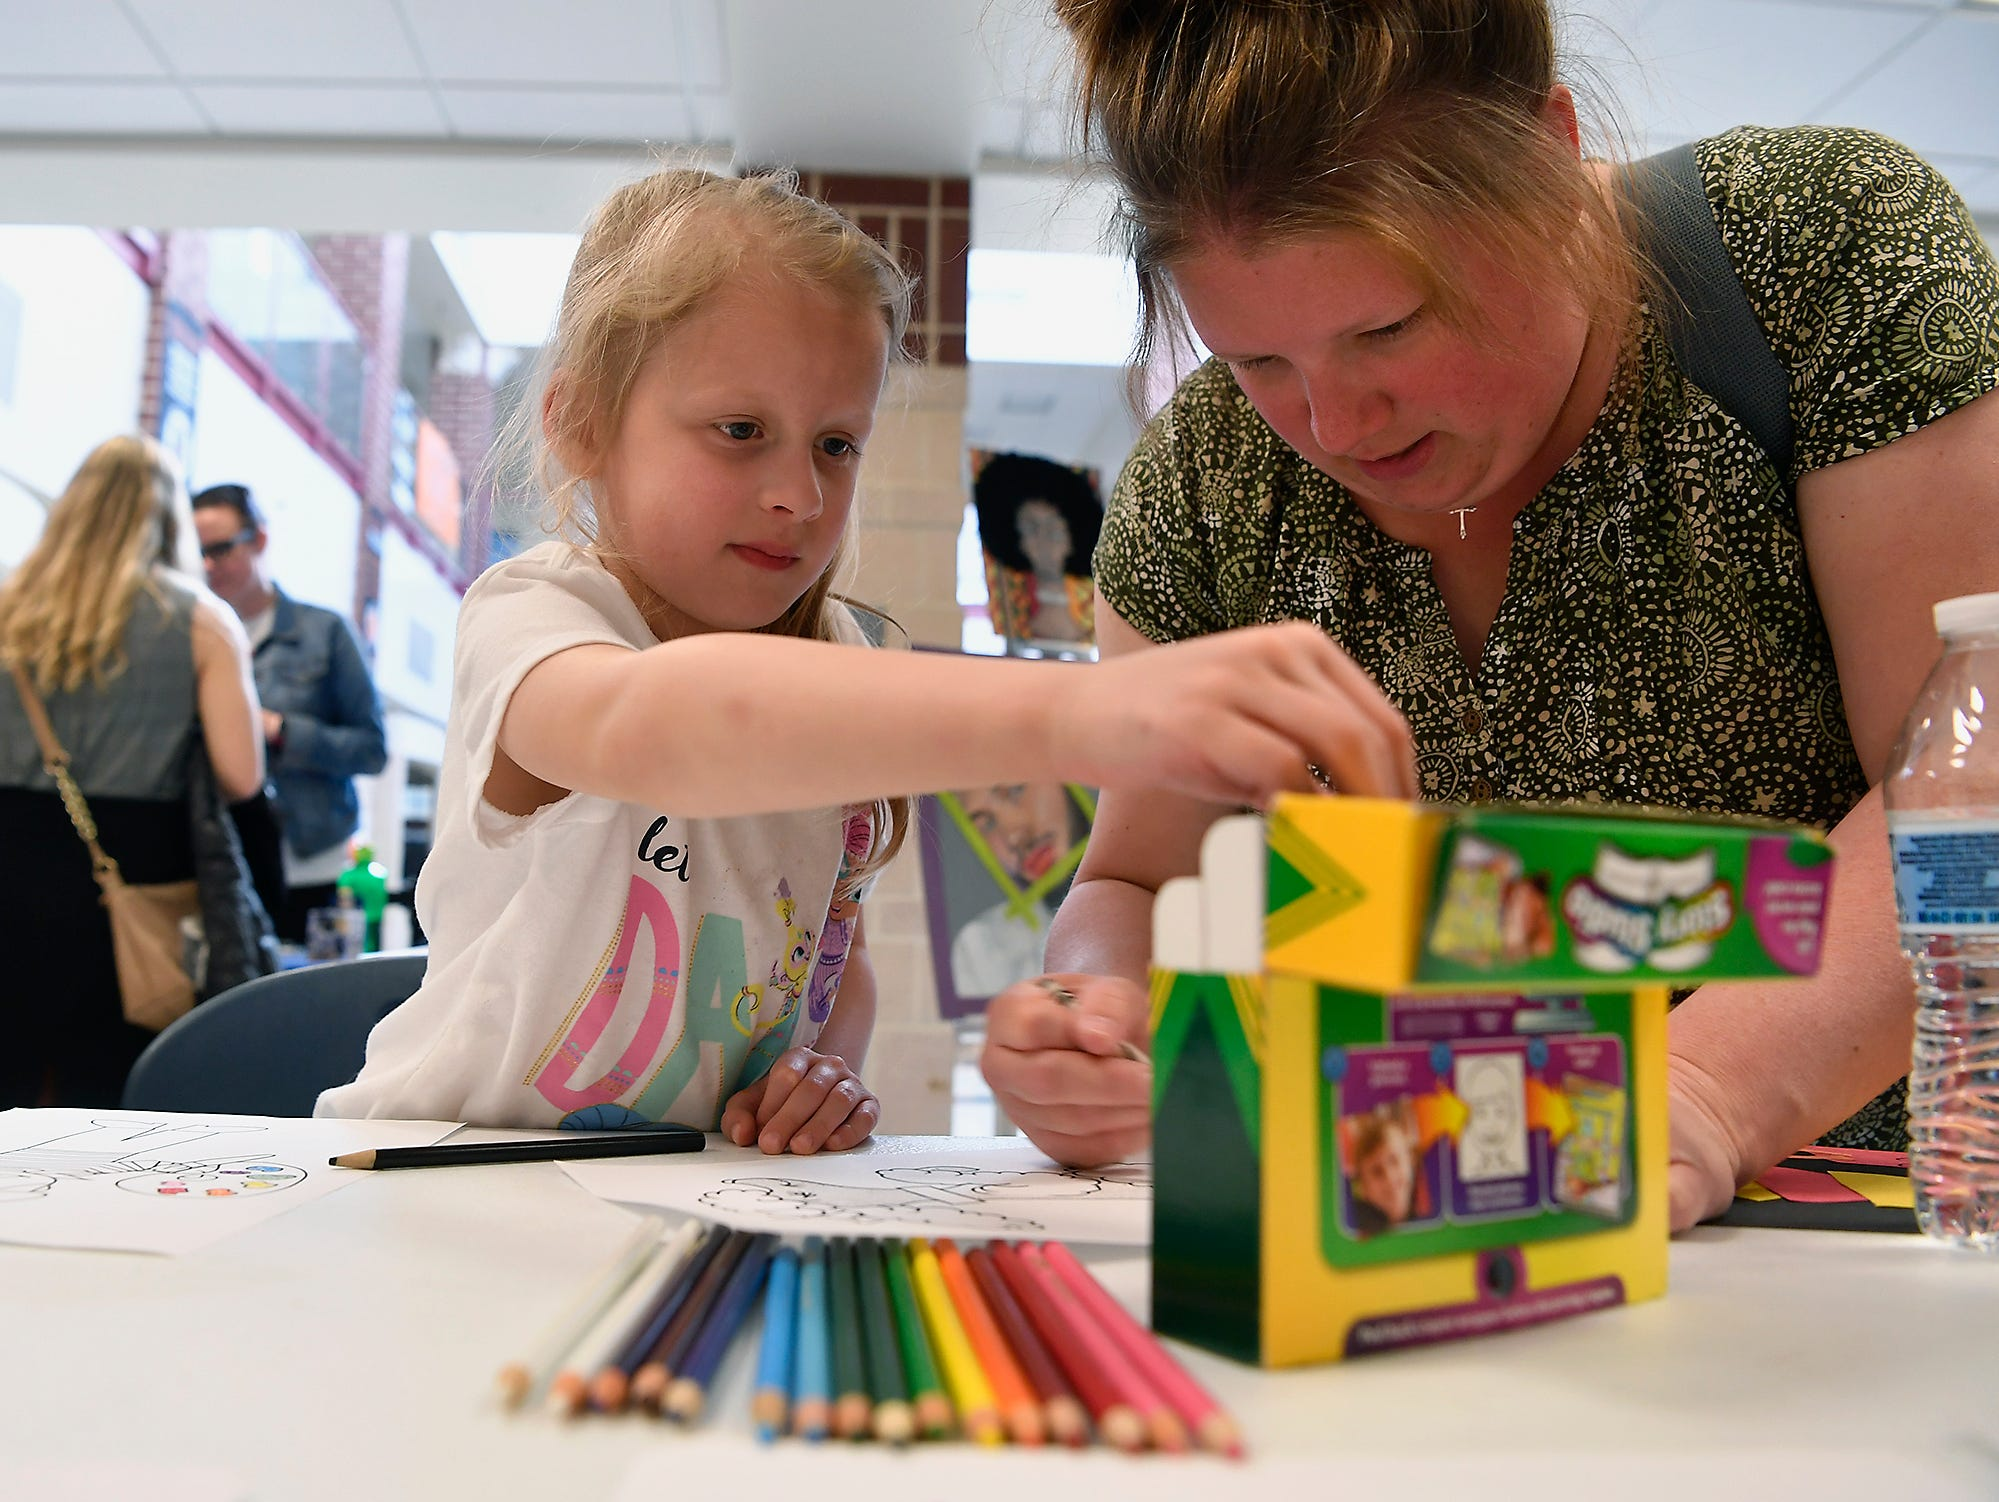 Brynn Rollman, 7, and mother Andrea, color during the 13th Annual Diversity Celebration at Central York High School, Thursday, April 11, 2019.John A. Pavoncello photo